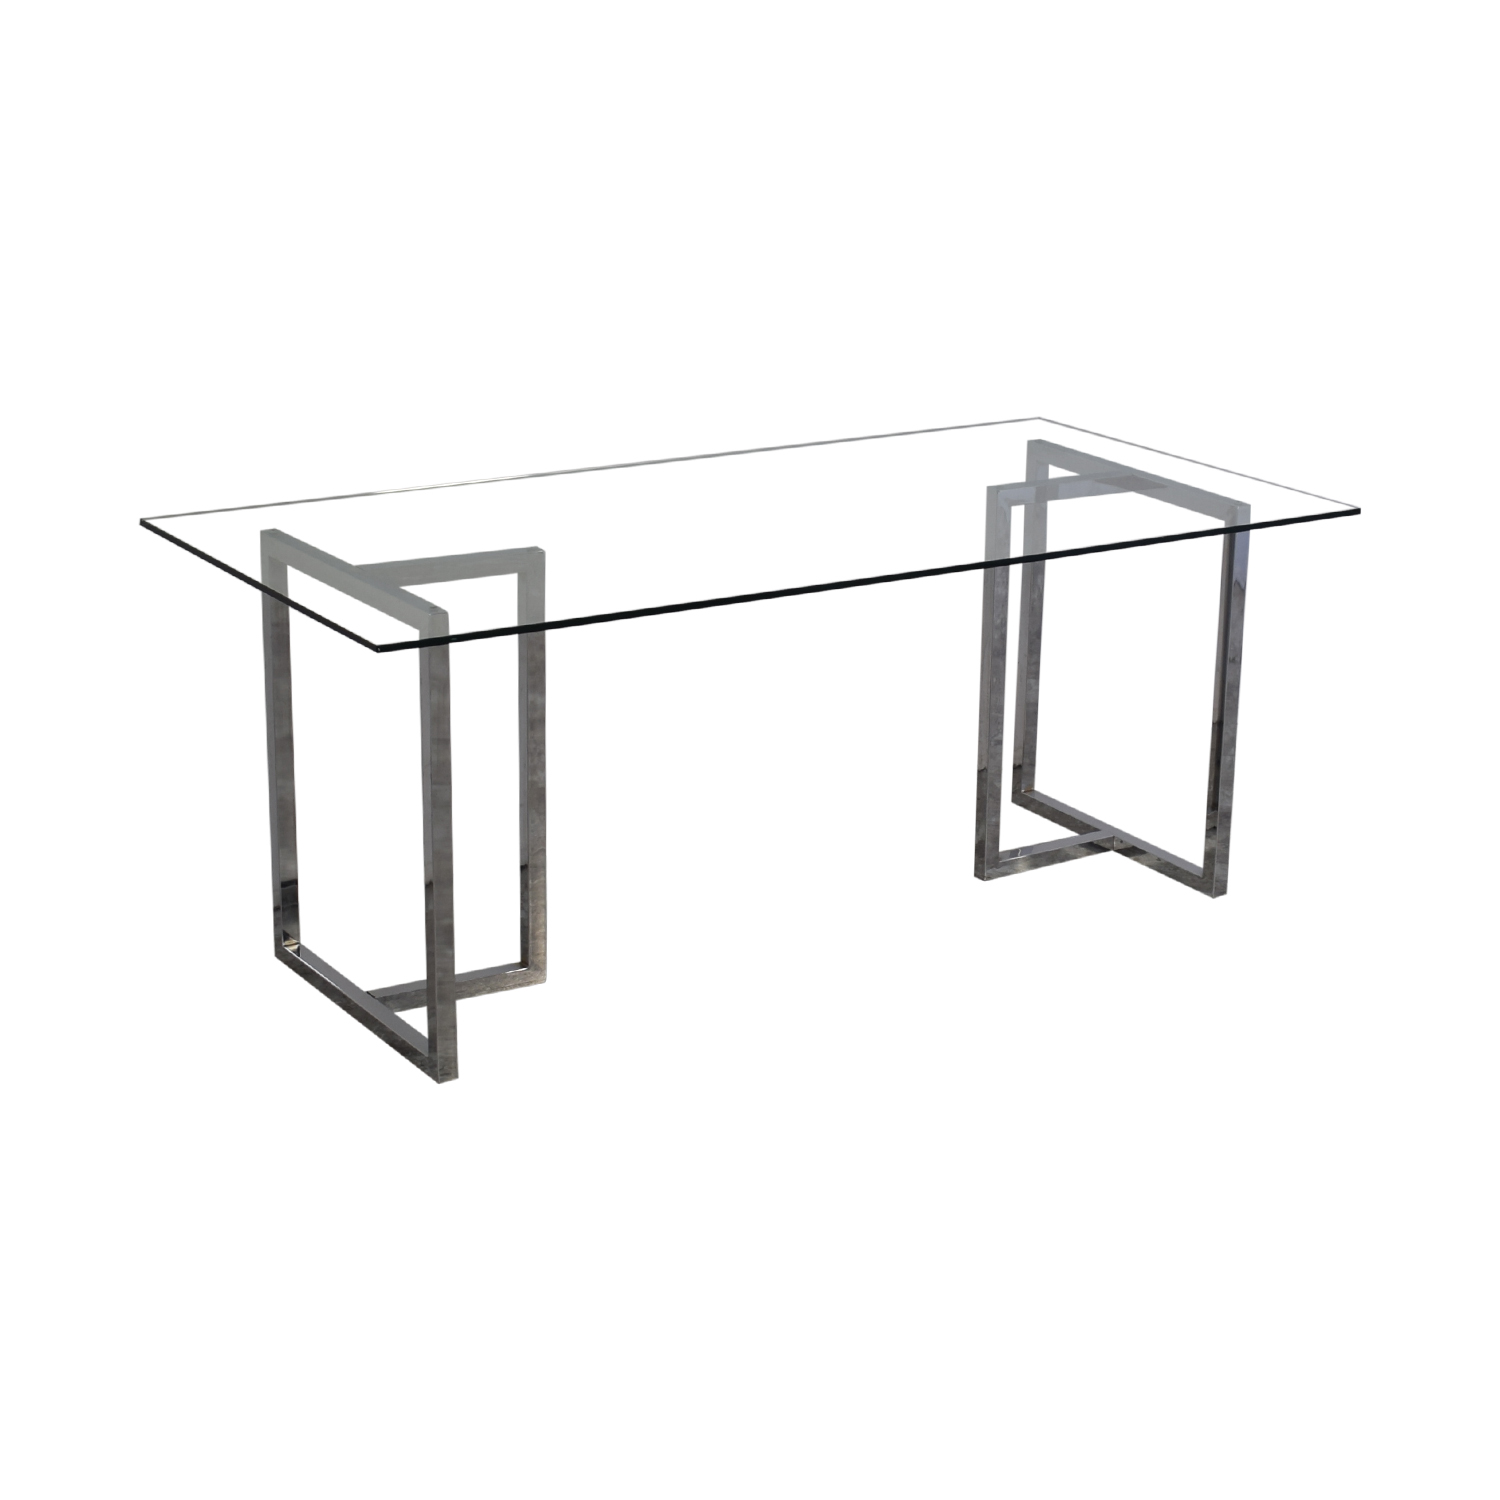 Outstanding 31 Off Cb2 Cb2 Silverado Dining Table Tables Beatyapartments Chair Design Images Beatyapartmentscom